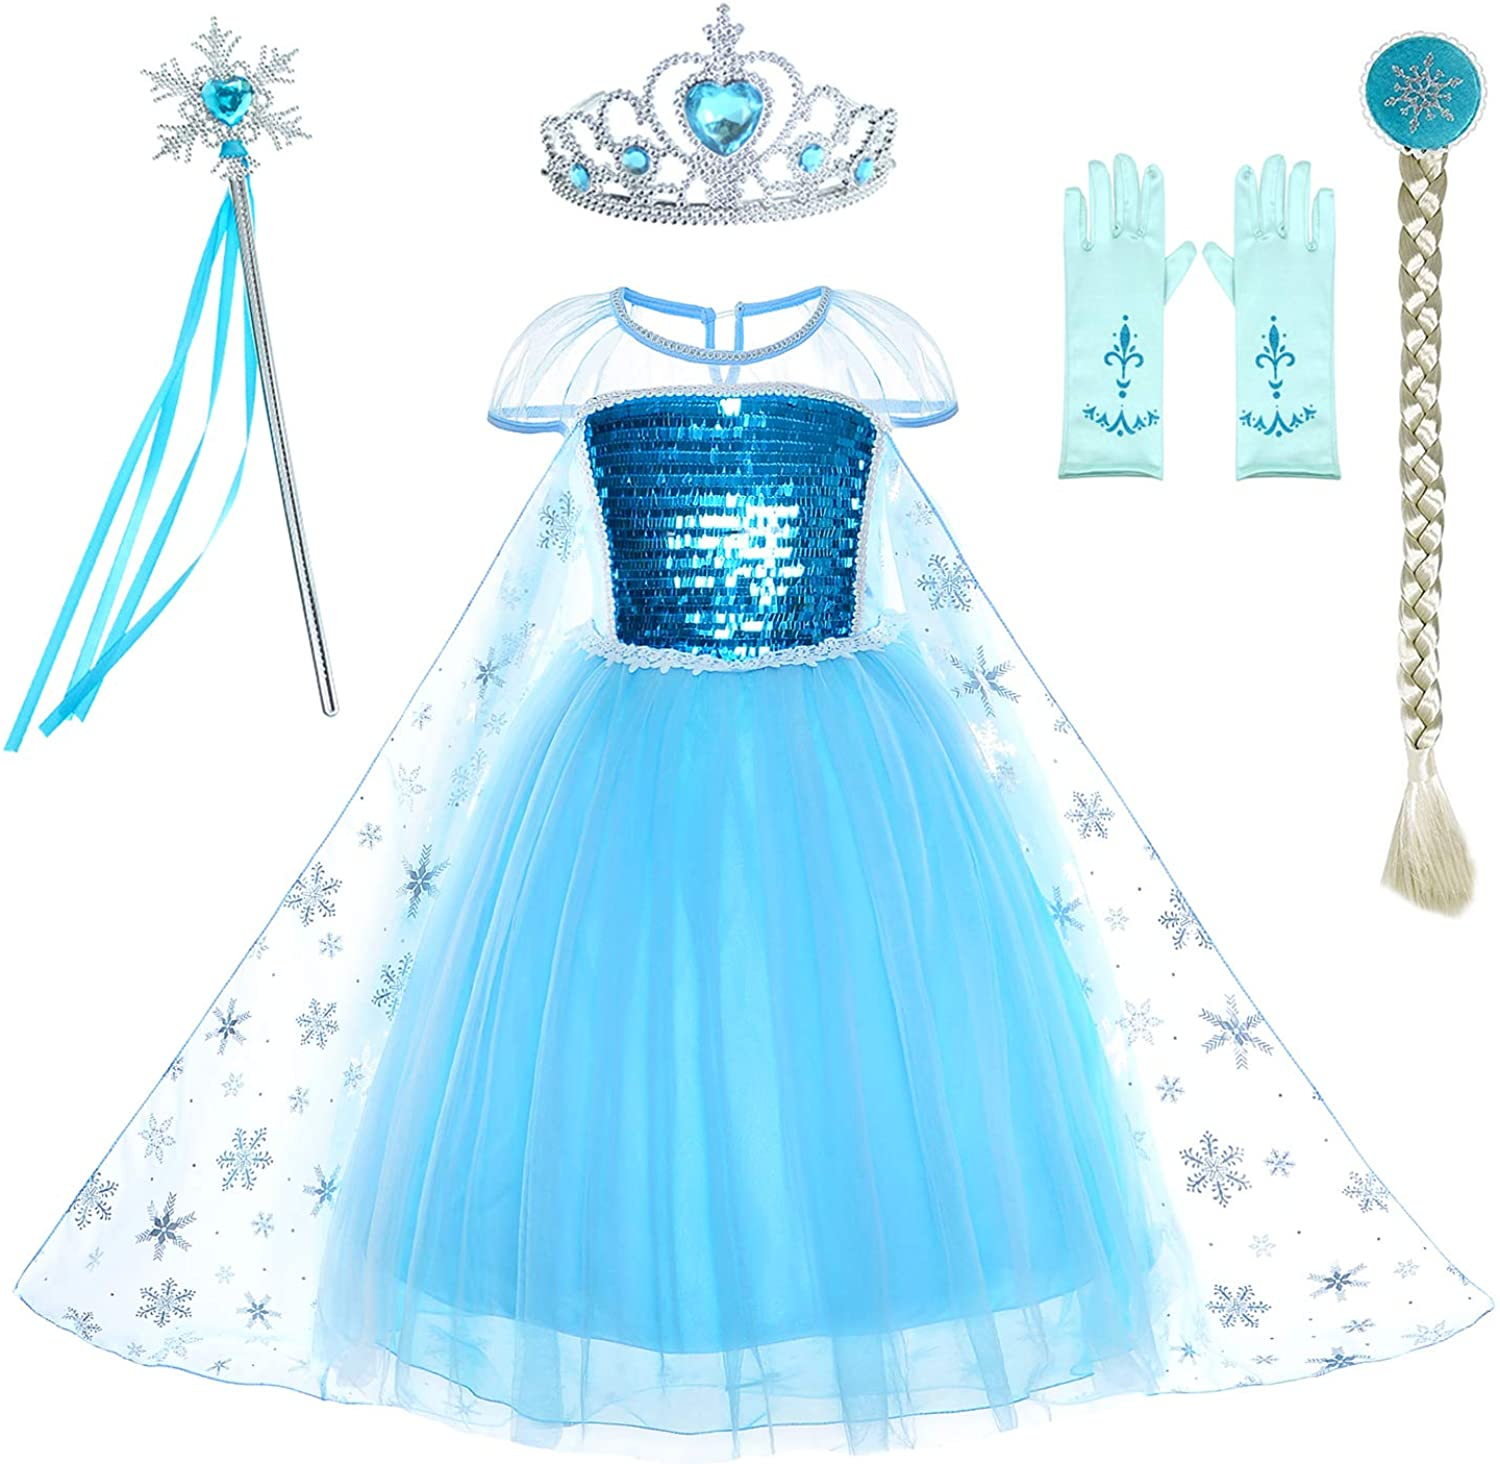 Party Chili Princess Costumes Birthday Dress Up for Little Girls with  Crown,Mace,Gloves Accessories 6-6 Years